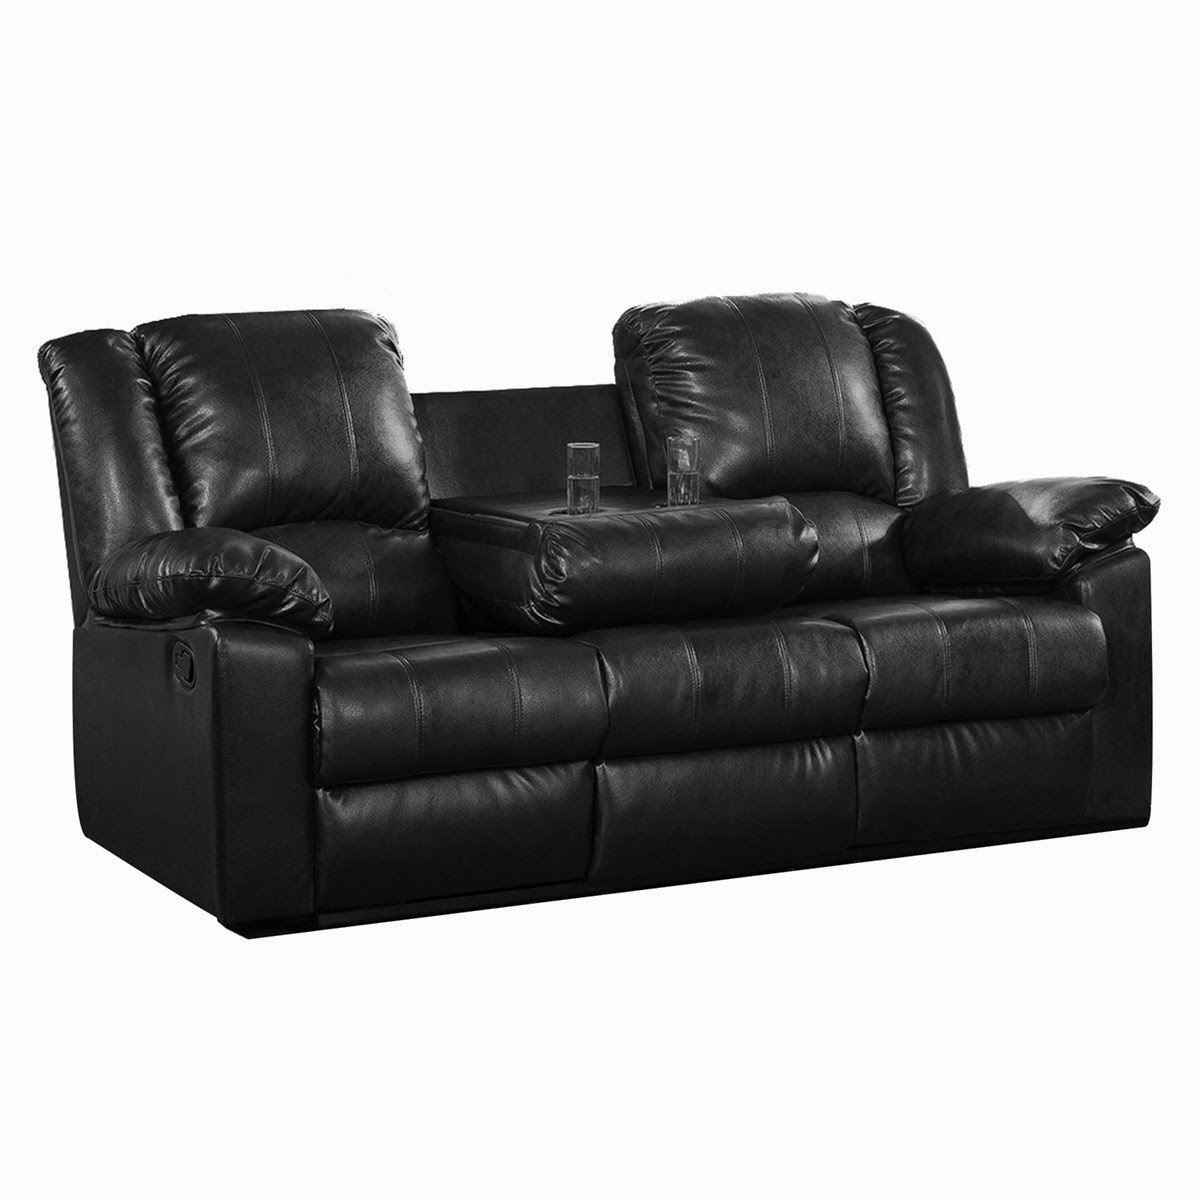 Where To Get Sofa Bed In Singapore Track Arm Definition Recliner Sale